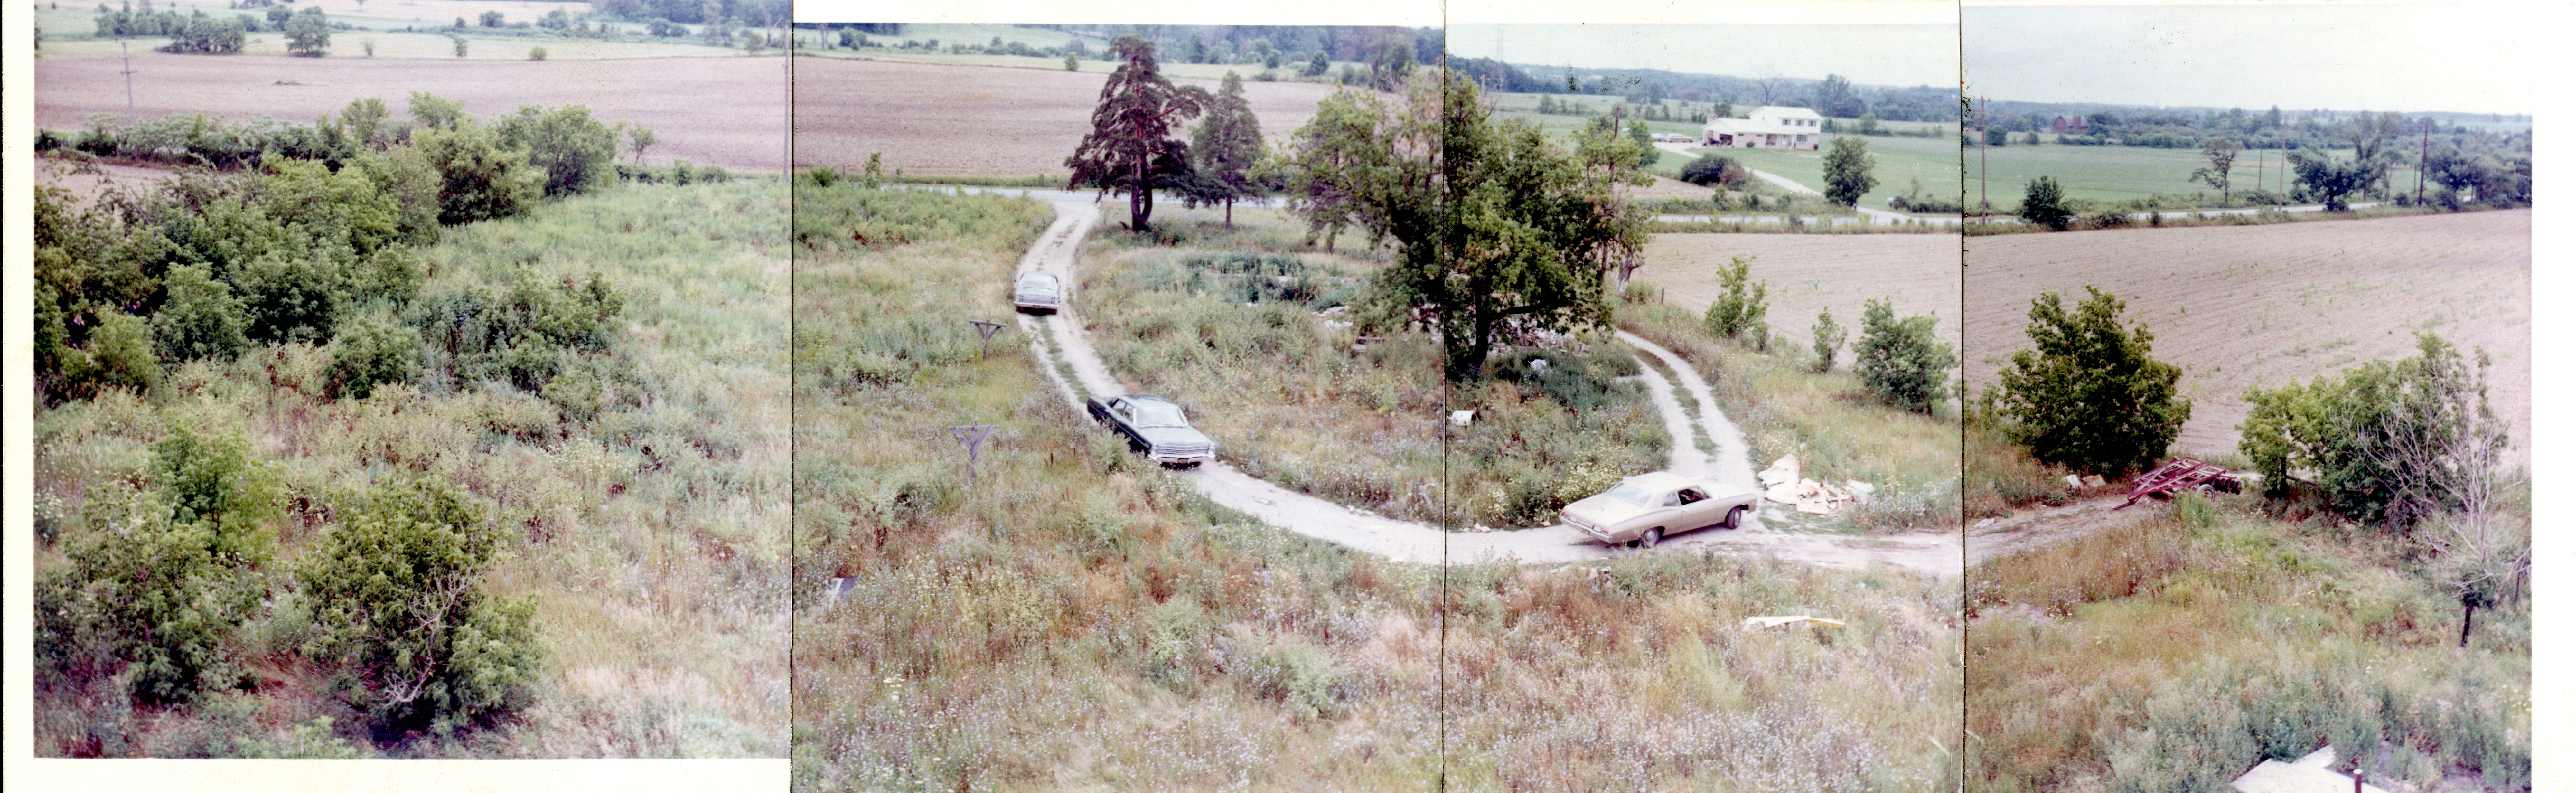 Police stitched together evidence photos from Mary Fleszar's murder case to create a landscape panorama.